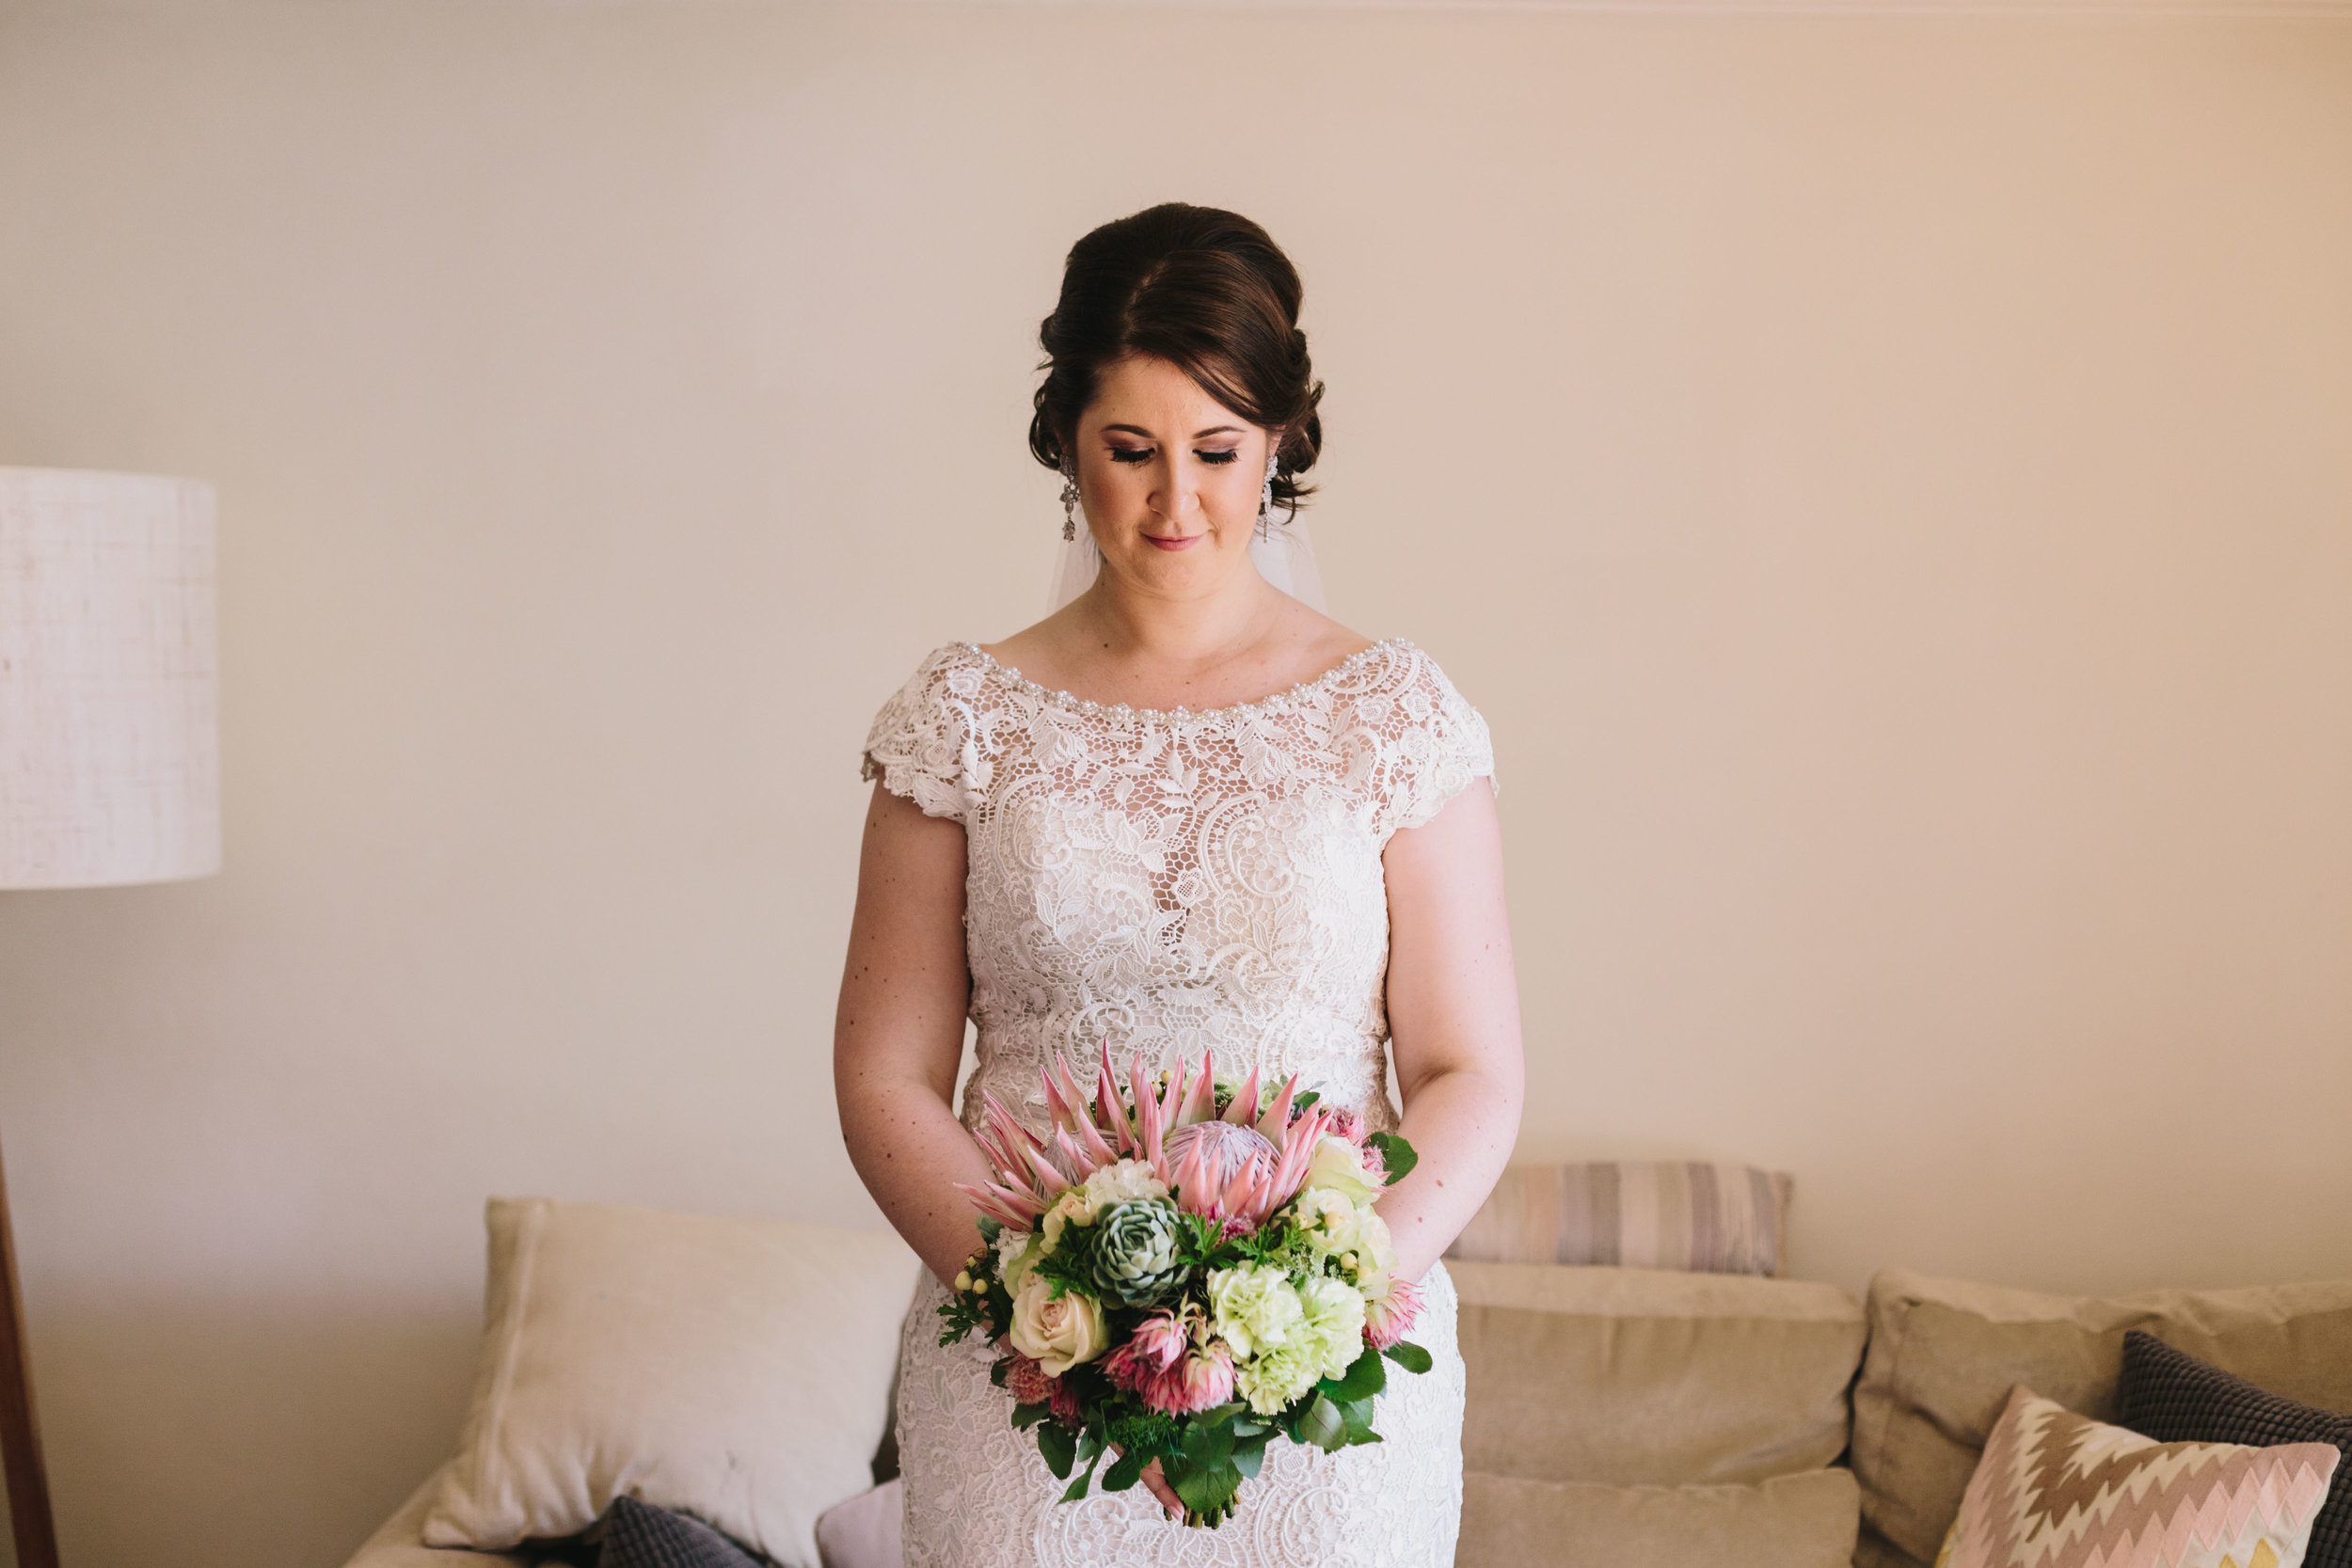 Bride with her bouquet. Sydney wedding photographer